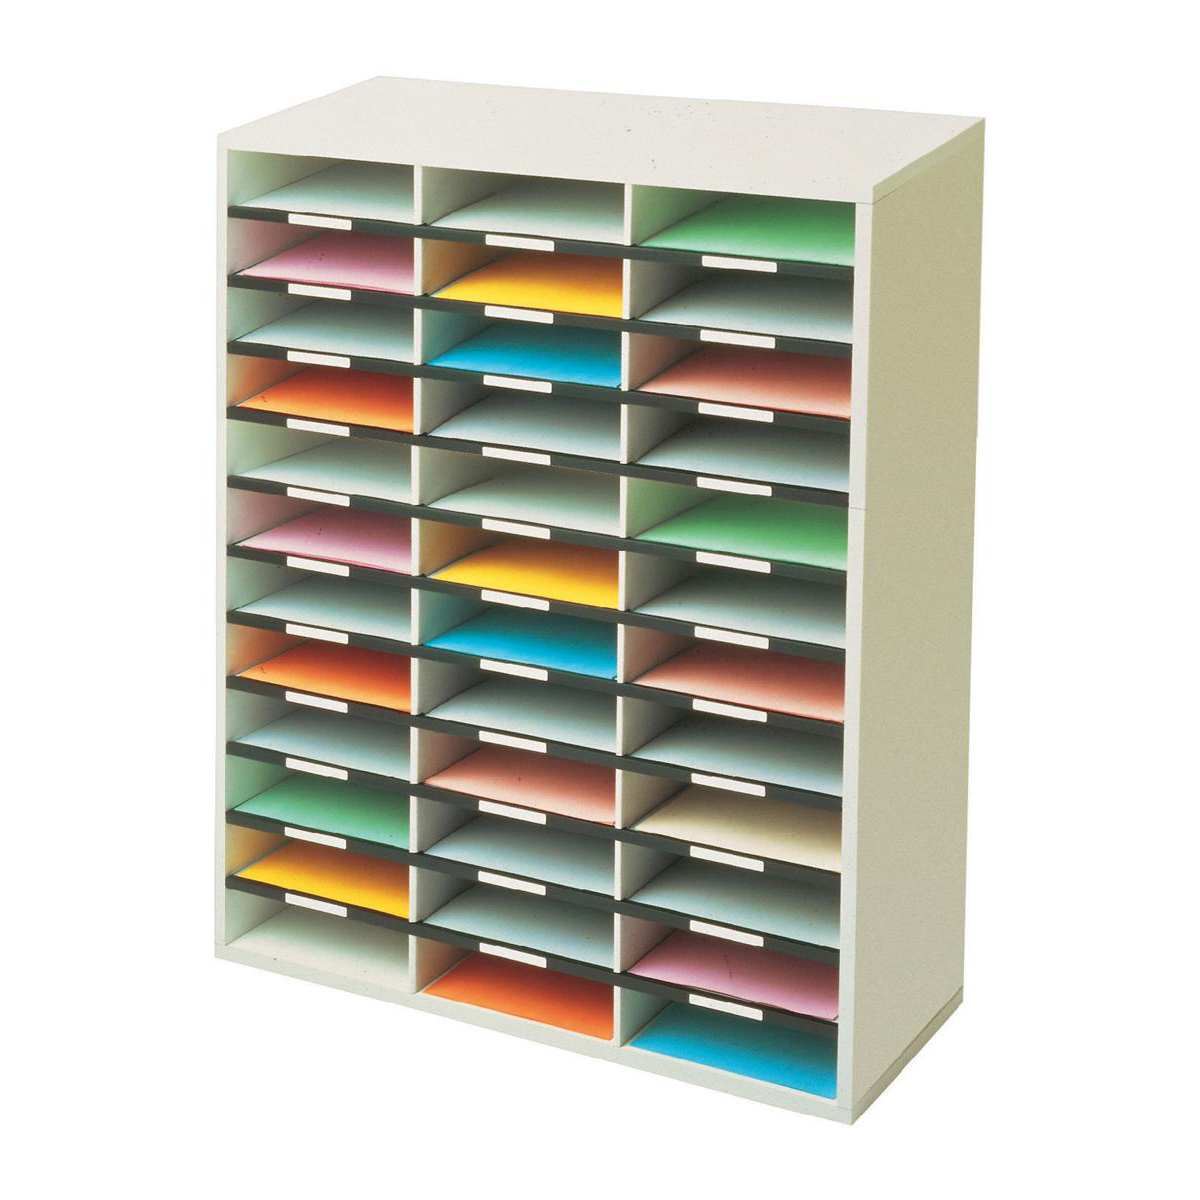 Post Boxes Fellowes Literature Sorter Melamine-laminated Shell 36 Compartments W737xD302xH881mm Ref 25061